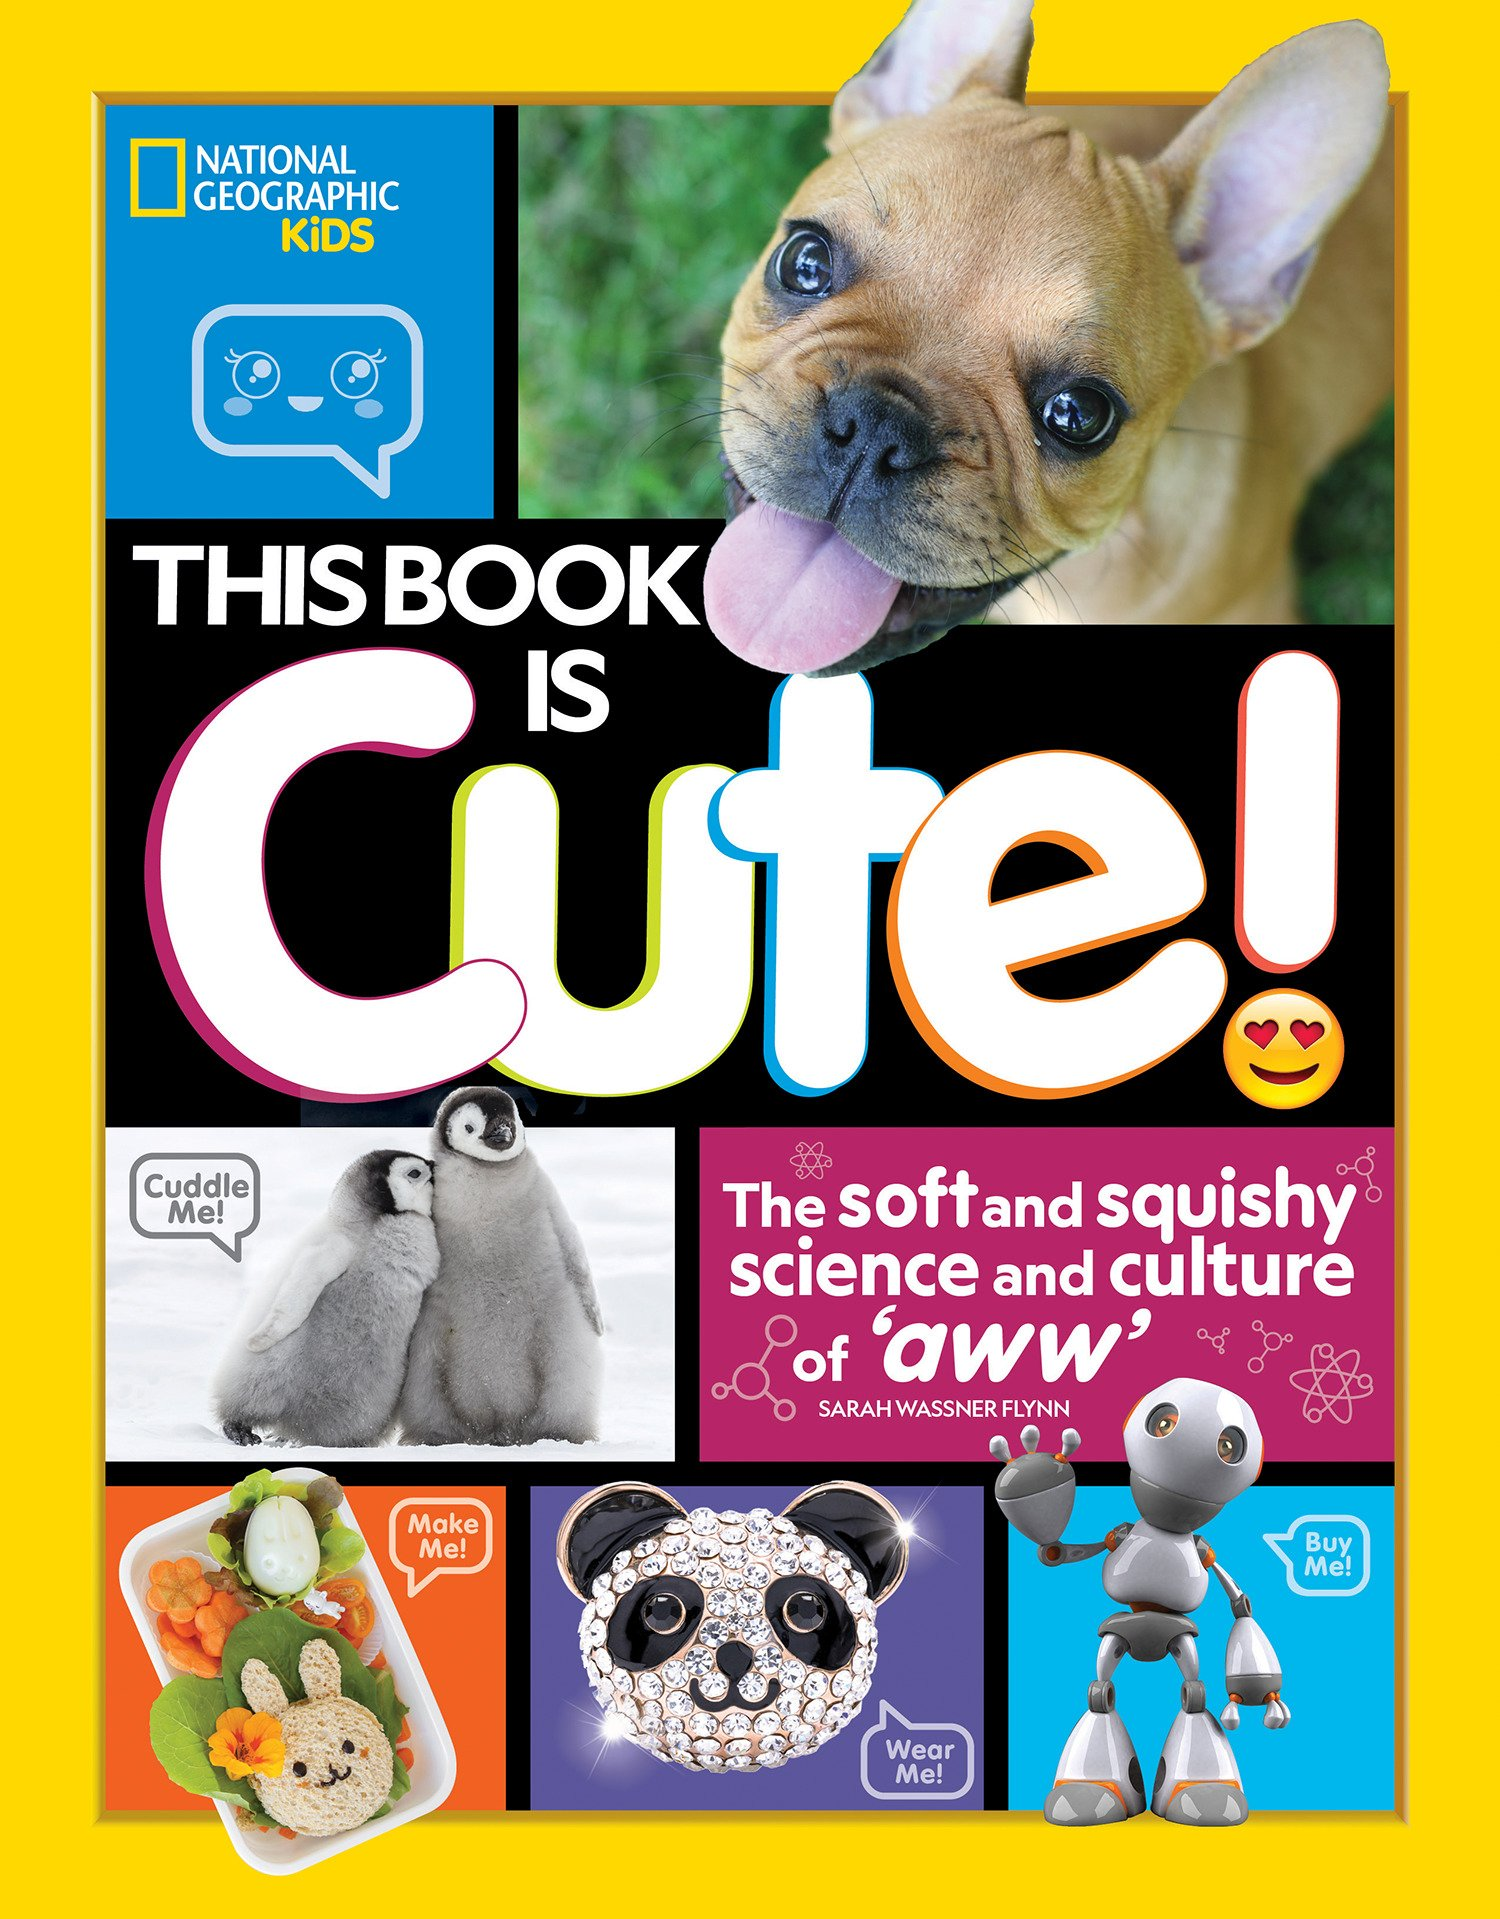 National Geographic Children's Books; edition edition (March 19, 2019)